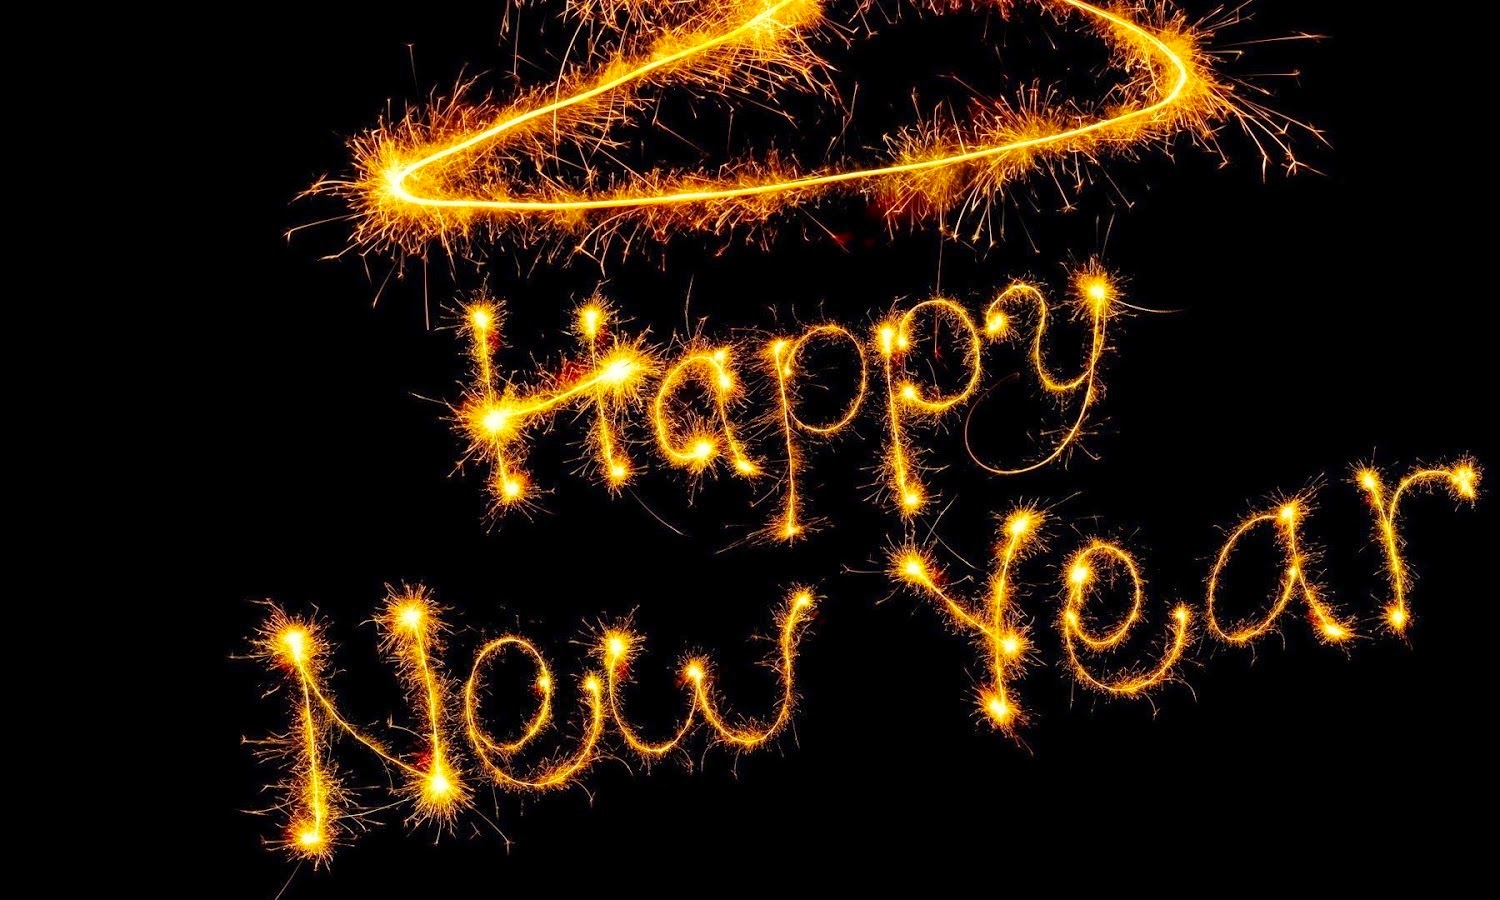 Happy new year quotes wishes wallpaper new year messagesnew year poemsnew year poetrynew year quotesnew year smsnew year wallpapersnew year wishes m4hsunfo